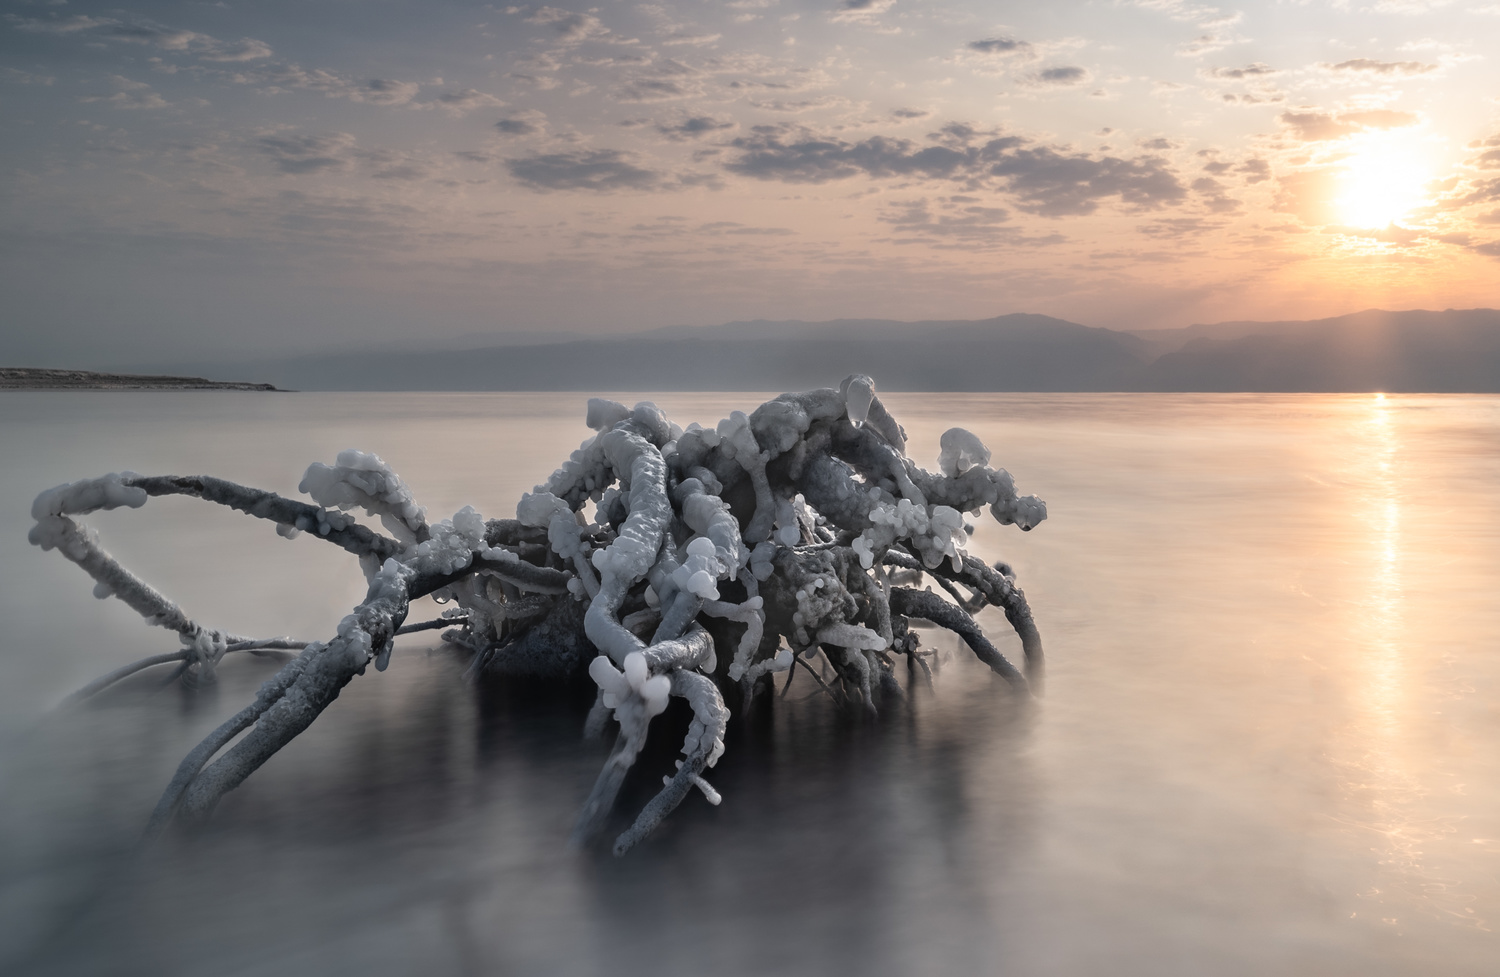 The Dead Sea Monster by German Shtainberg